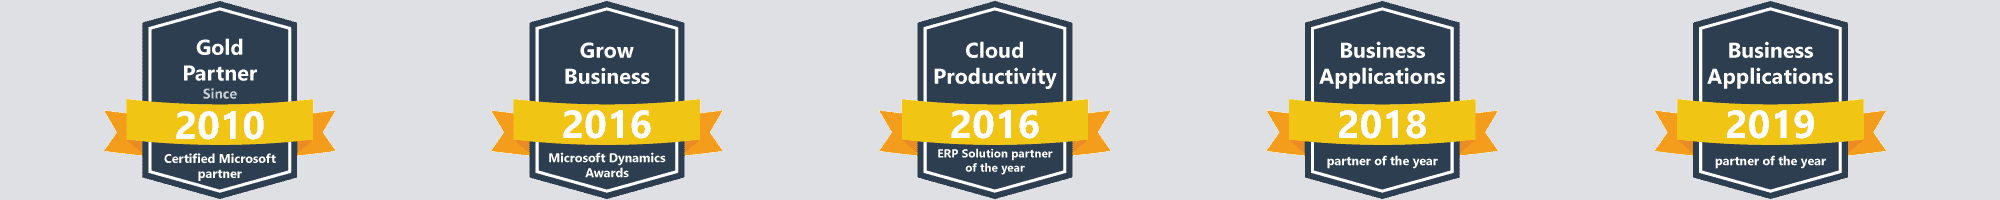 Microsoft Dynamics 365 Partner and Dynamics 365 experts with over 30 years of experience and numeros awards in the erp and crm industry.